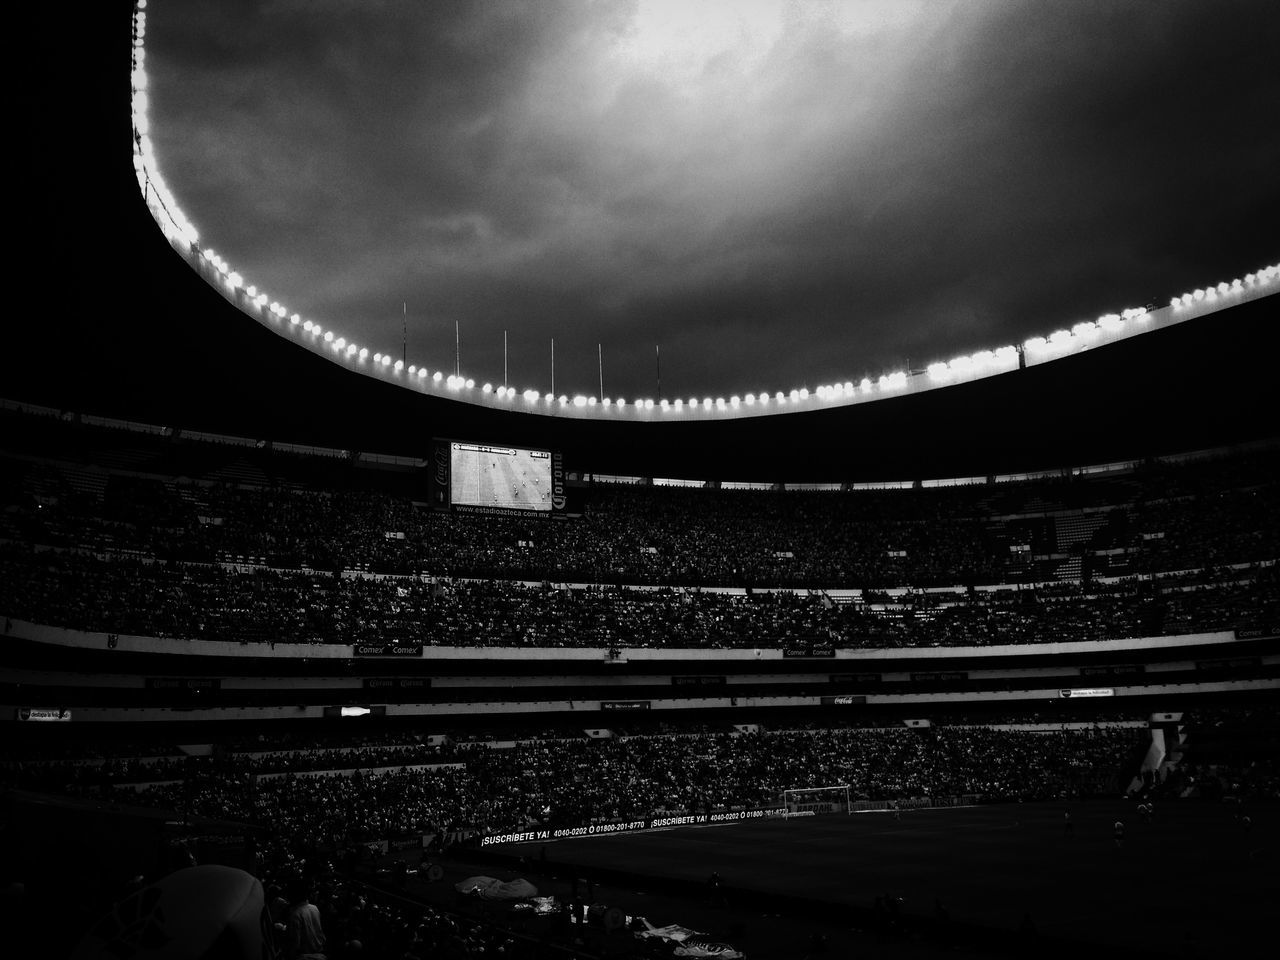 Football Stadium Soccer⚽ Futebol Estadioazteca Amazing Architecture Futeboll Blackandwhite Futbol EyeEm Best Shots Eyeemphotography